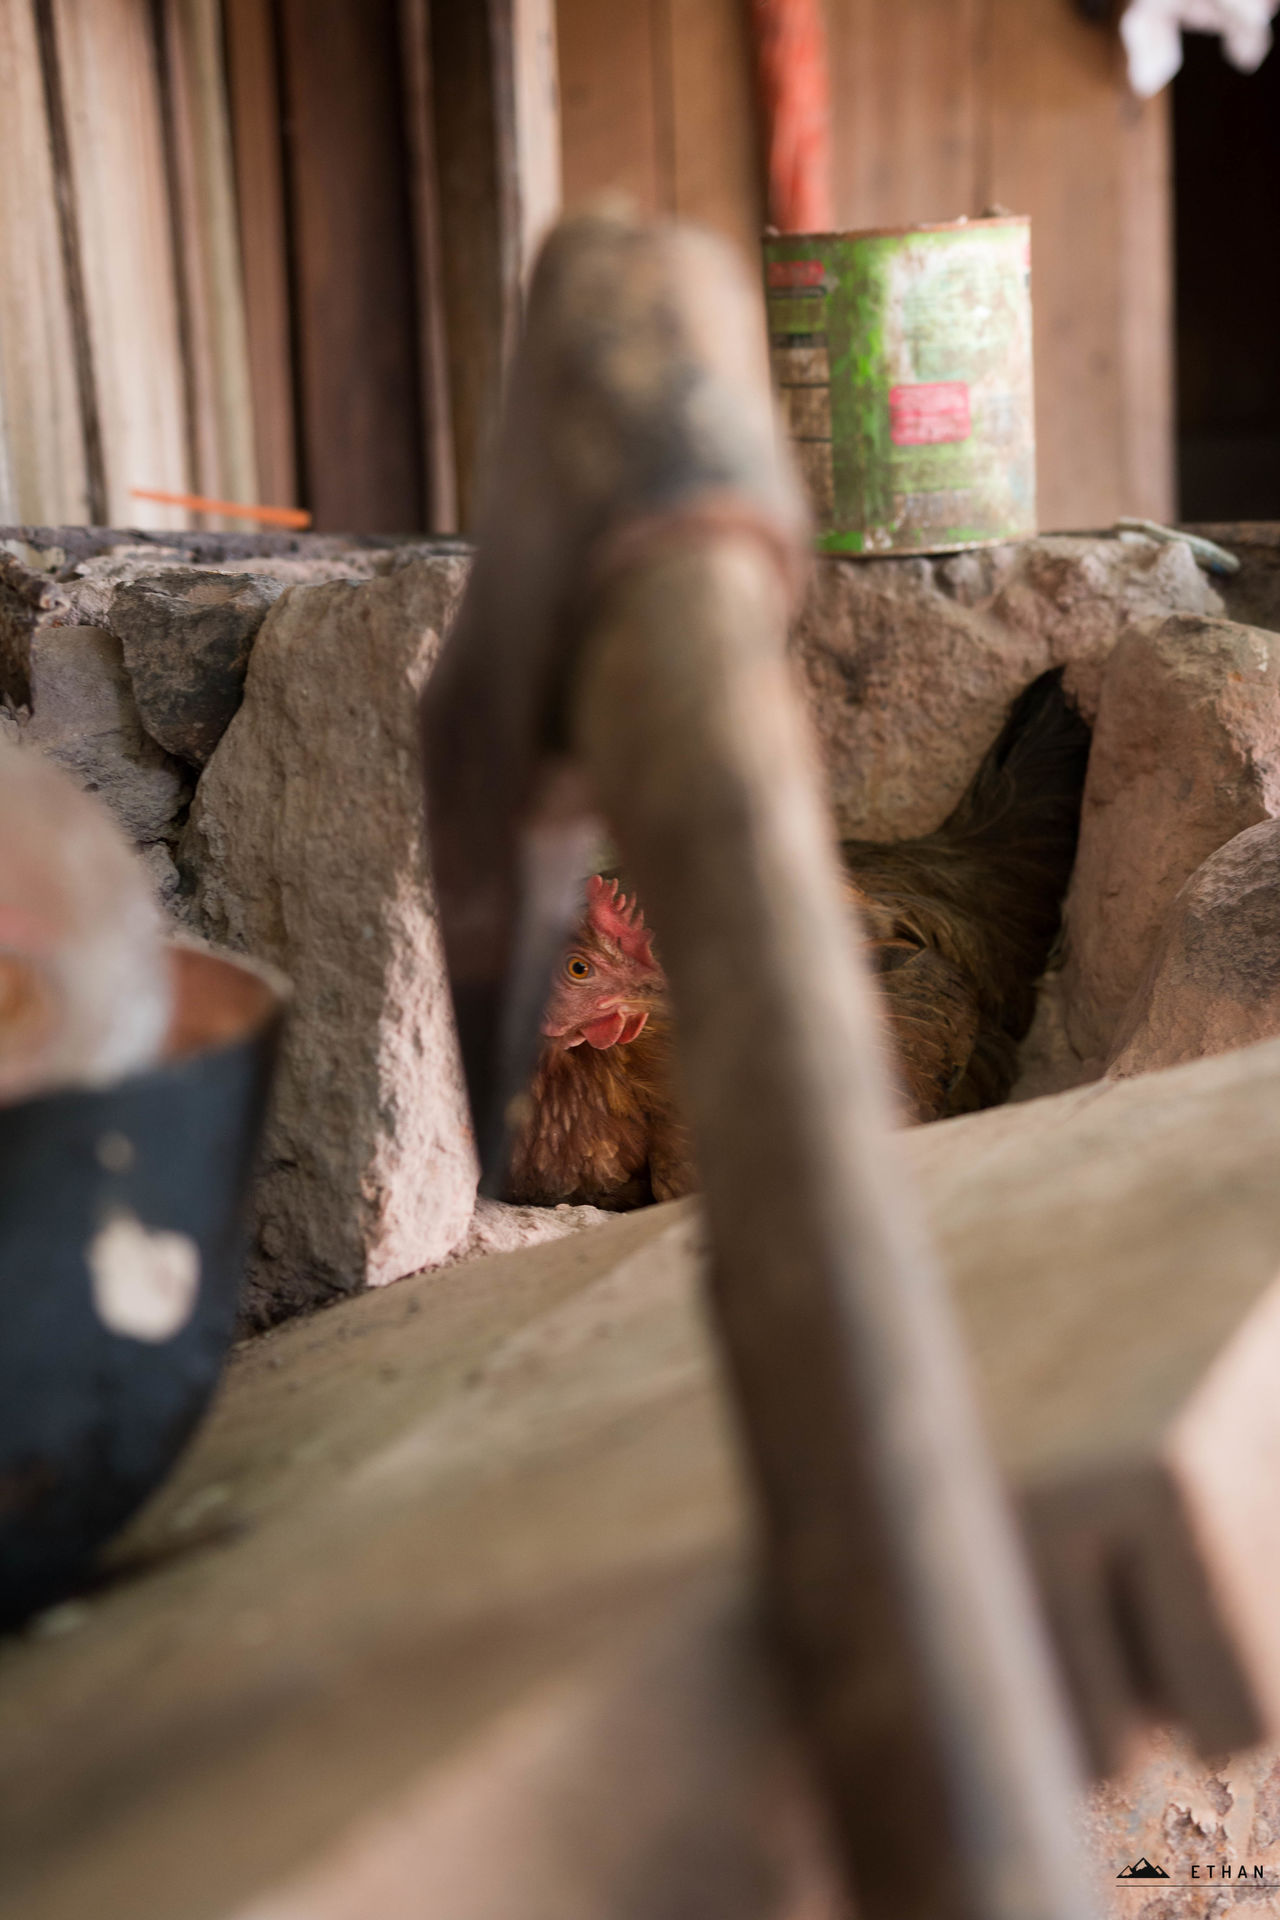 Impending death... Axe Chic Chicken Day Fragility Hen Person Plank Product Photography Rooster Selective Focus Surface Level